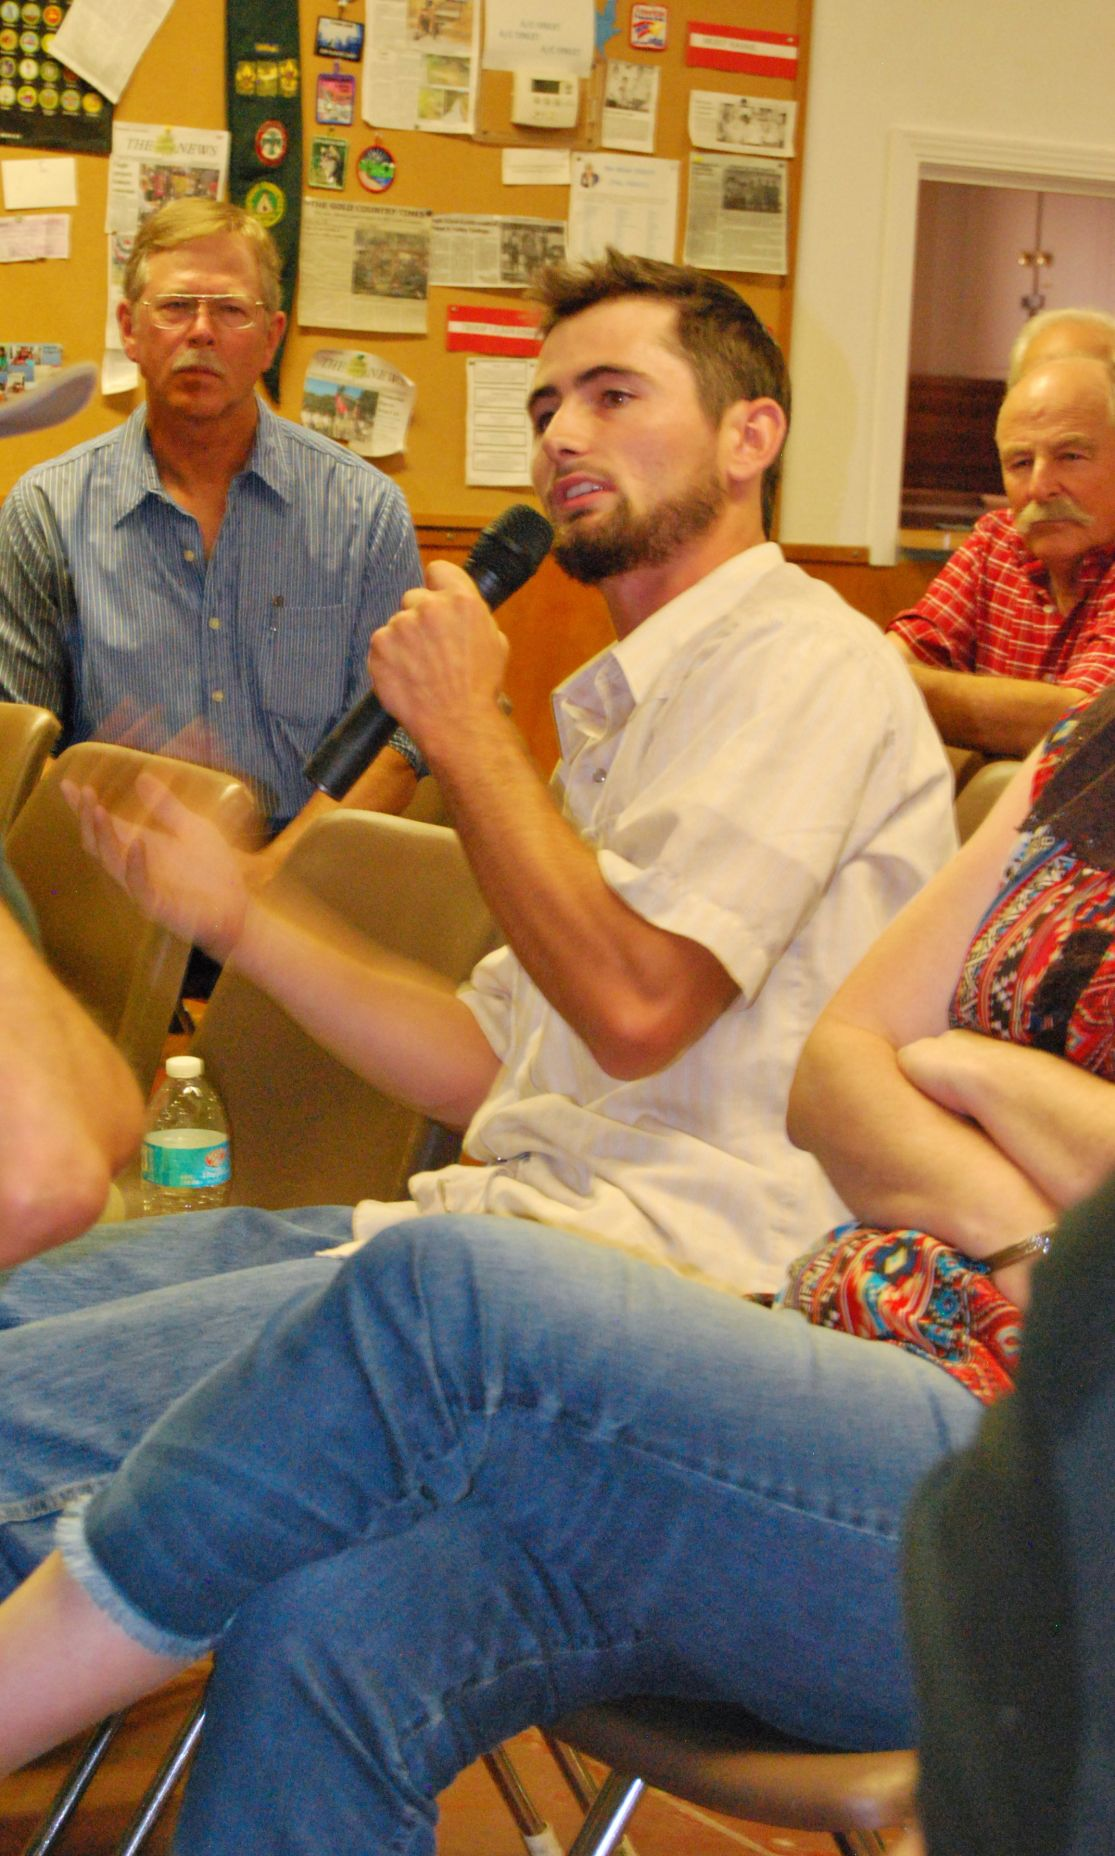 Second cannabis debate draws a divided crowd in Valley Springs